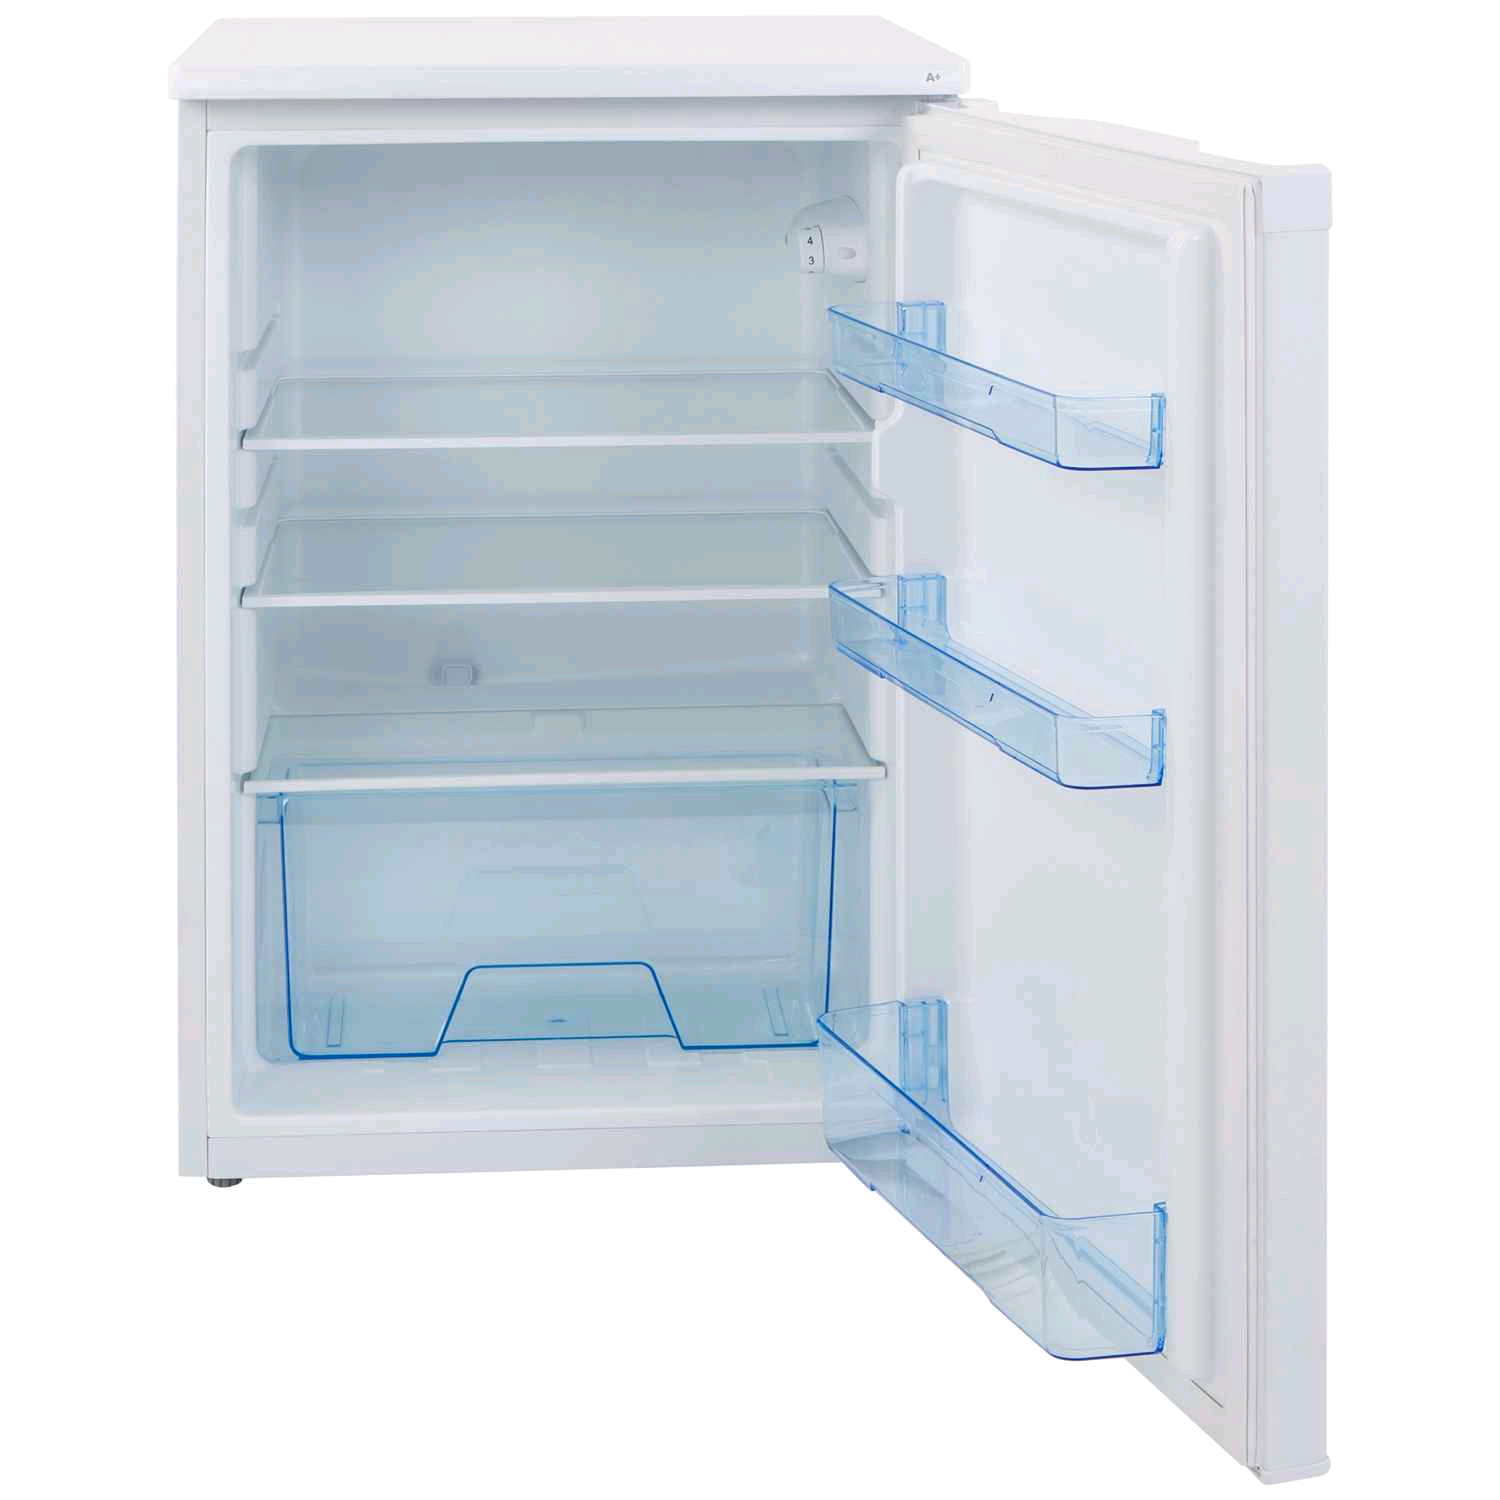 Lec Larder Fridge Under Counter White H850 W545 D554